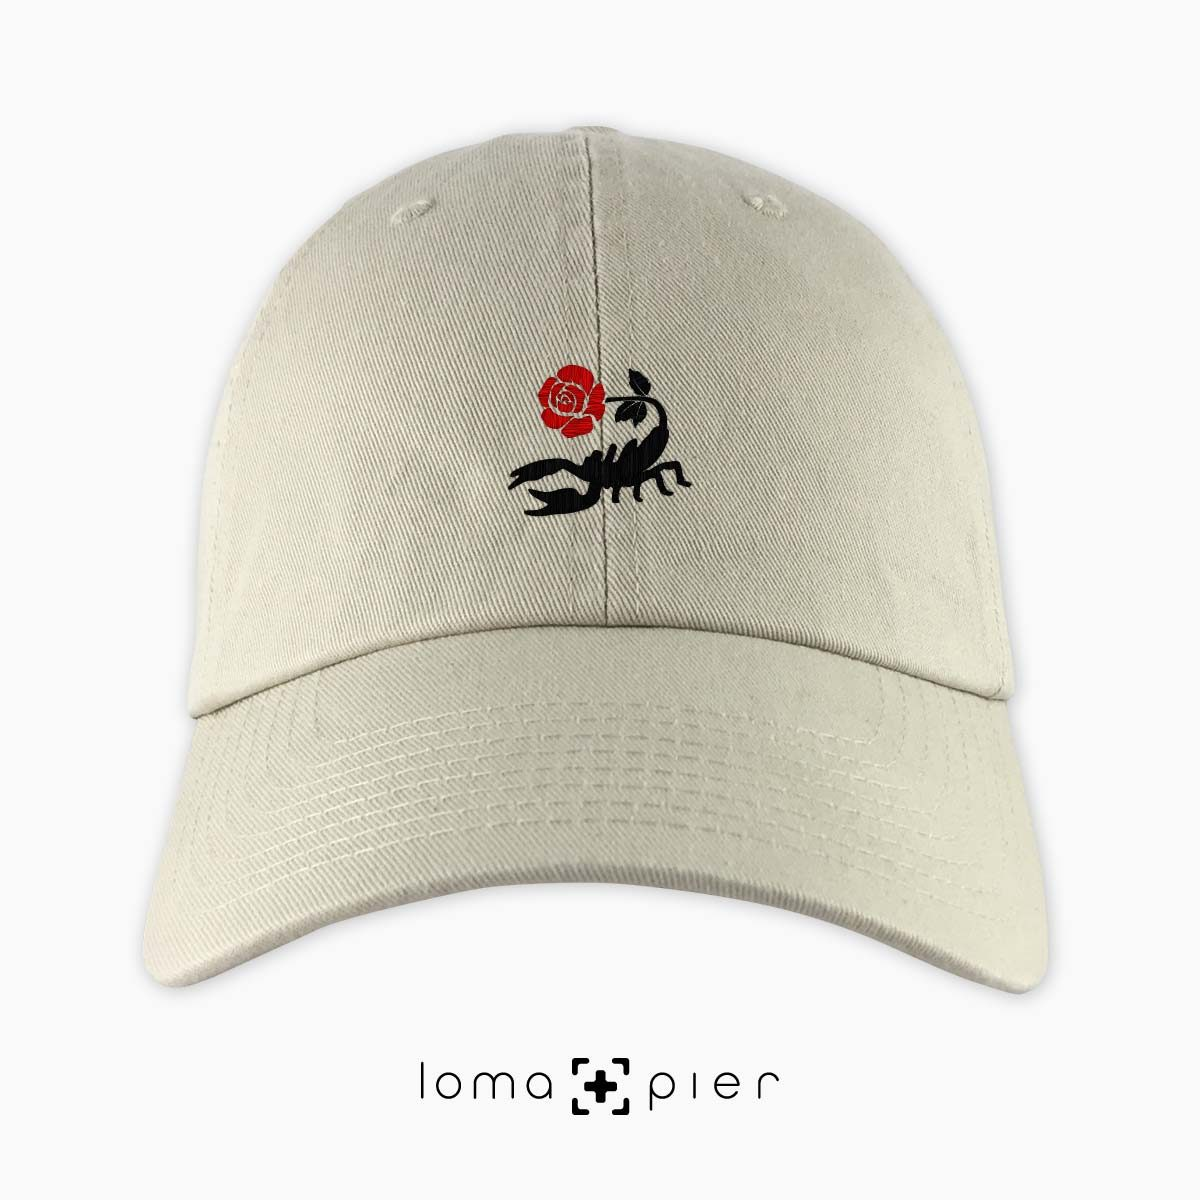 SCORPION ROSE icon embroidered on a khaki unstructured dad hat with red and black thread by loma+pier hat store made in the USA